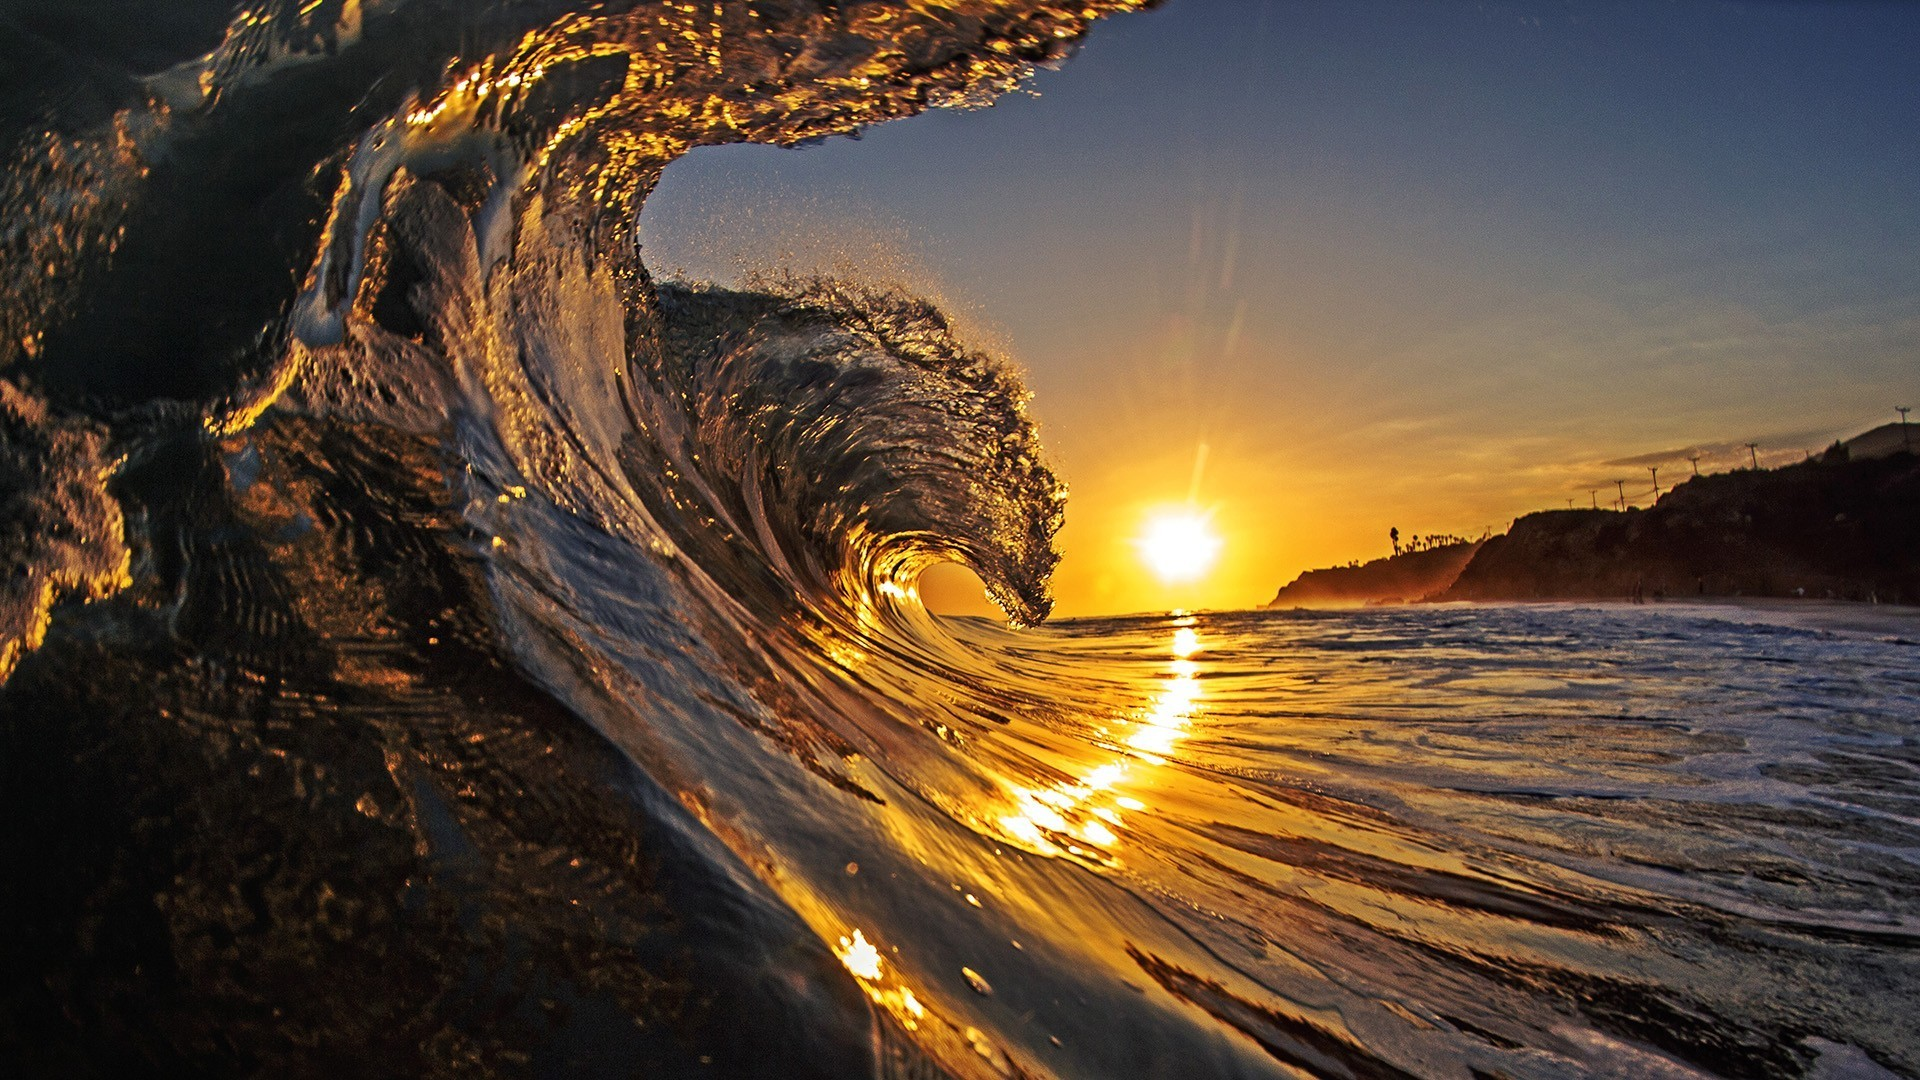 sunset surf hawaii beach wave ocean sand hd wallpaper